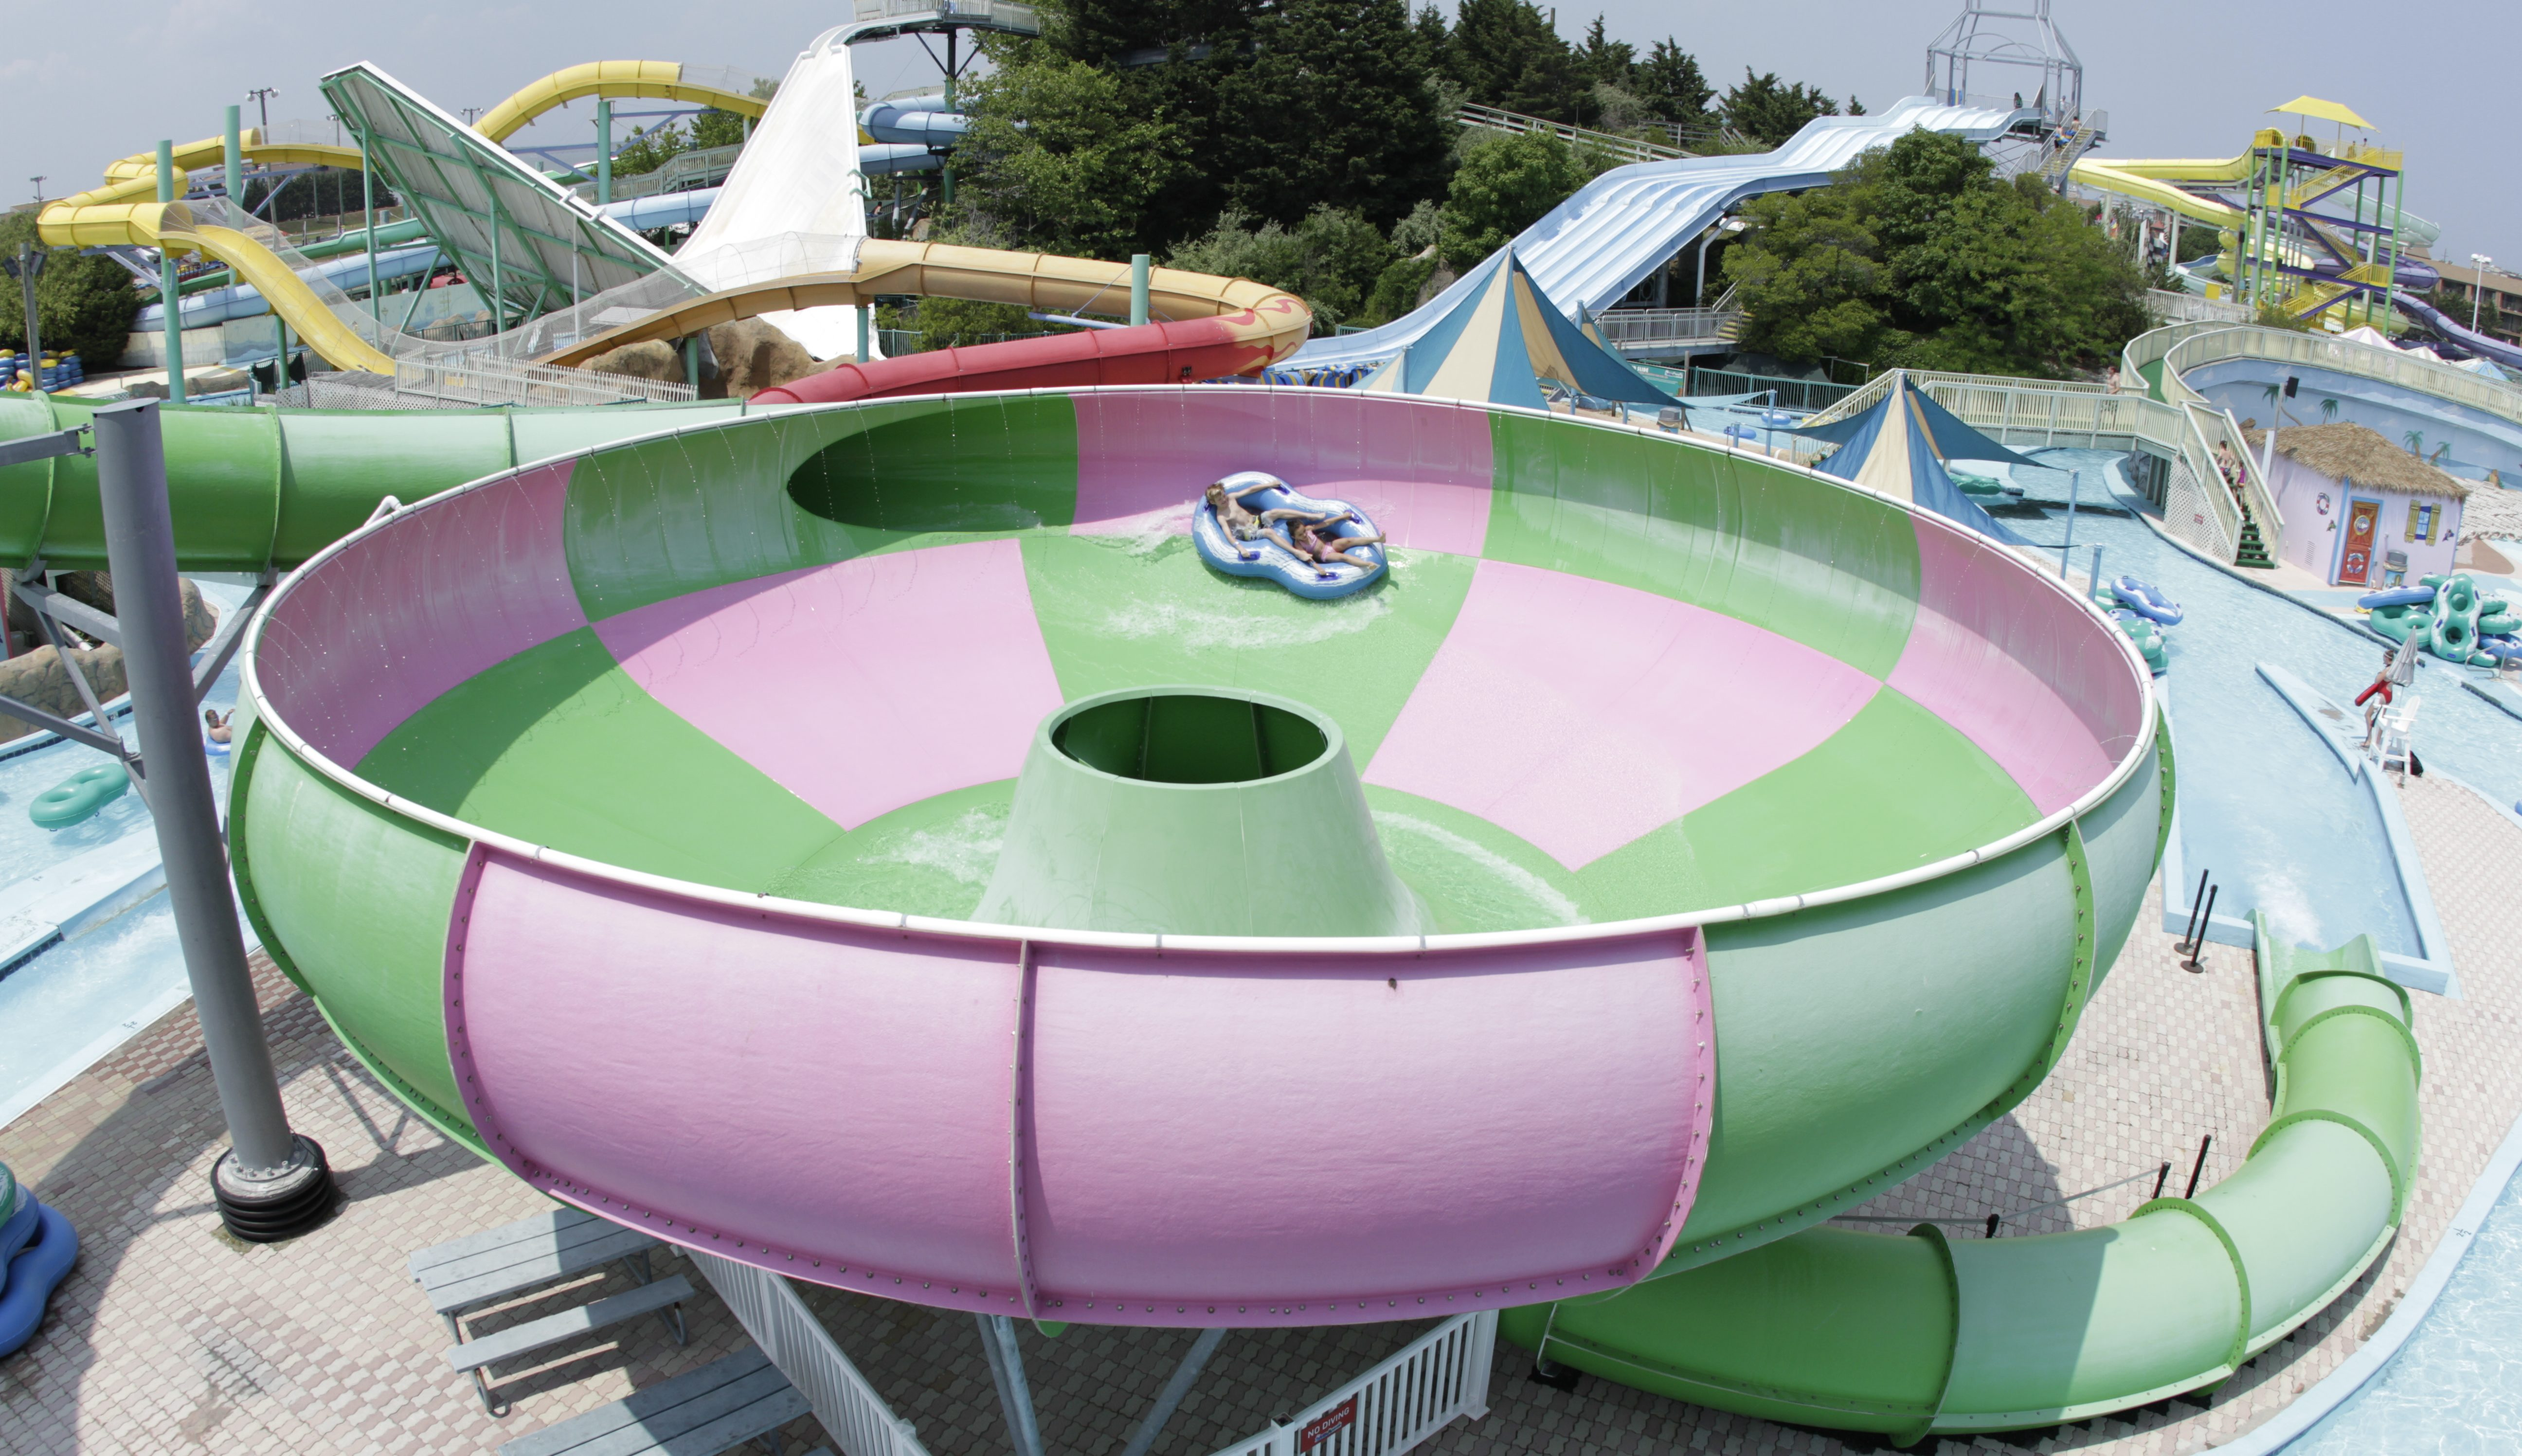 a pink and green hurricane shaped ride at a water park